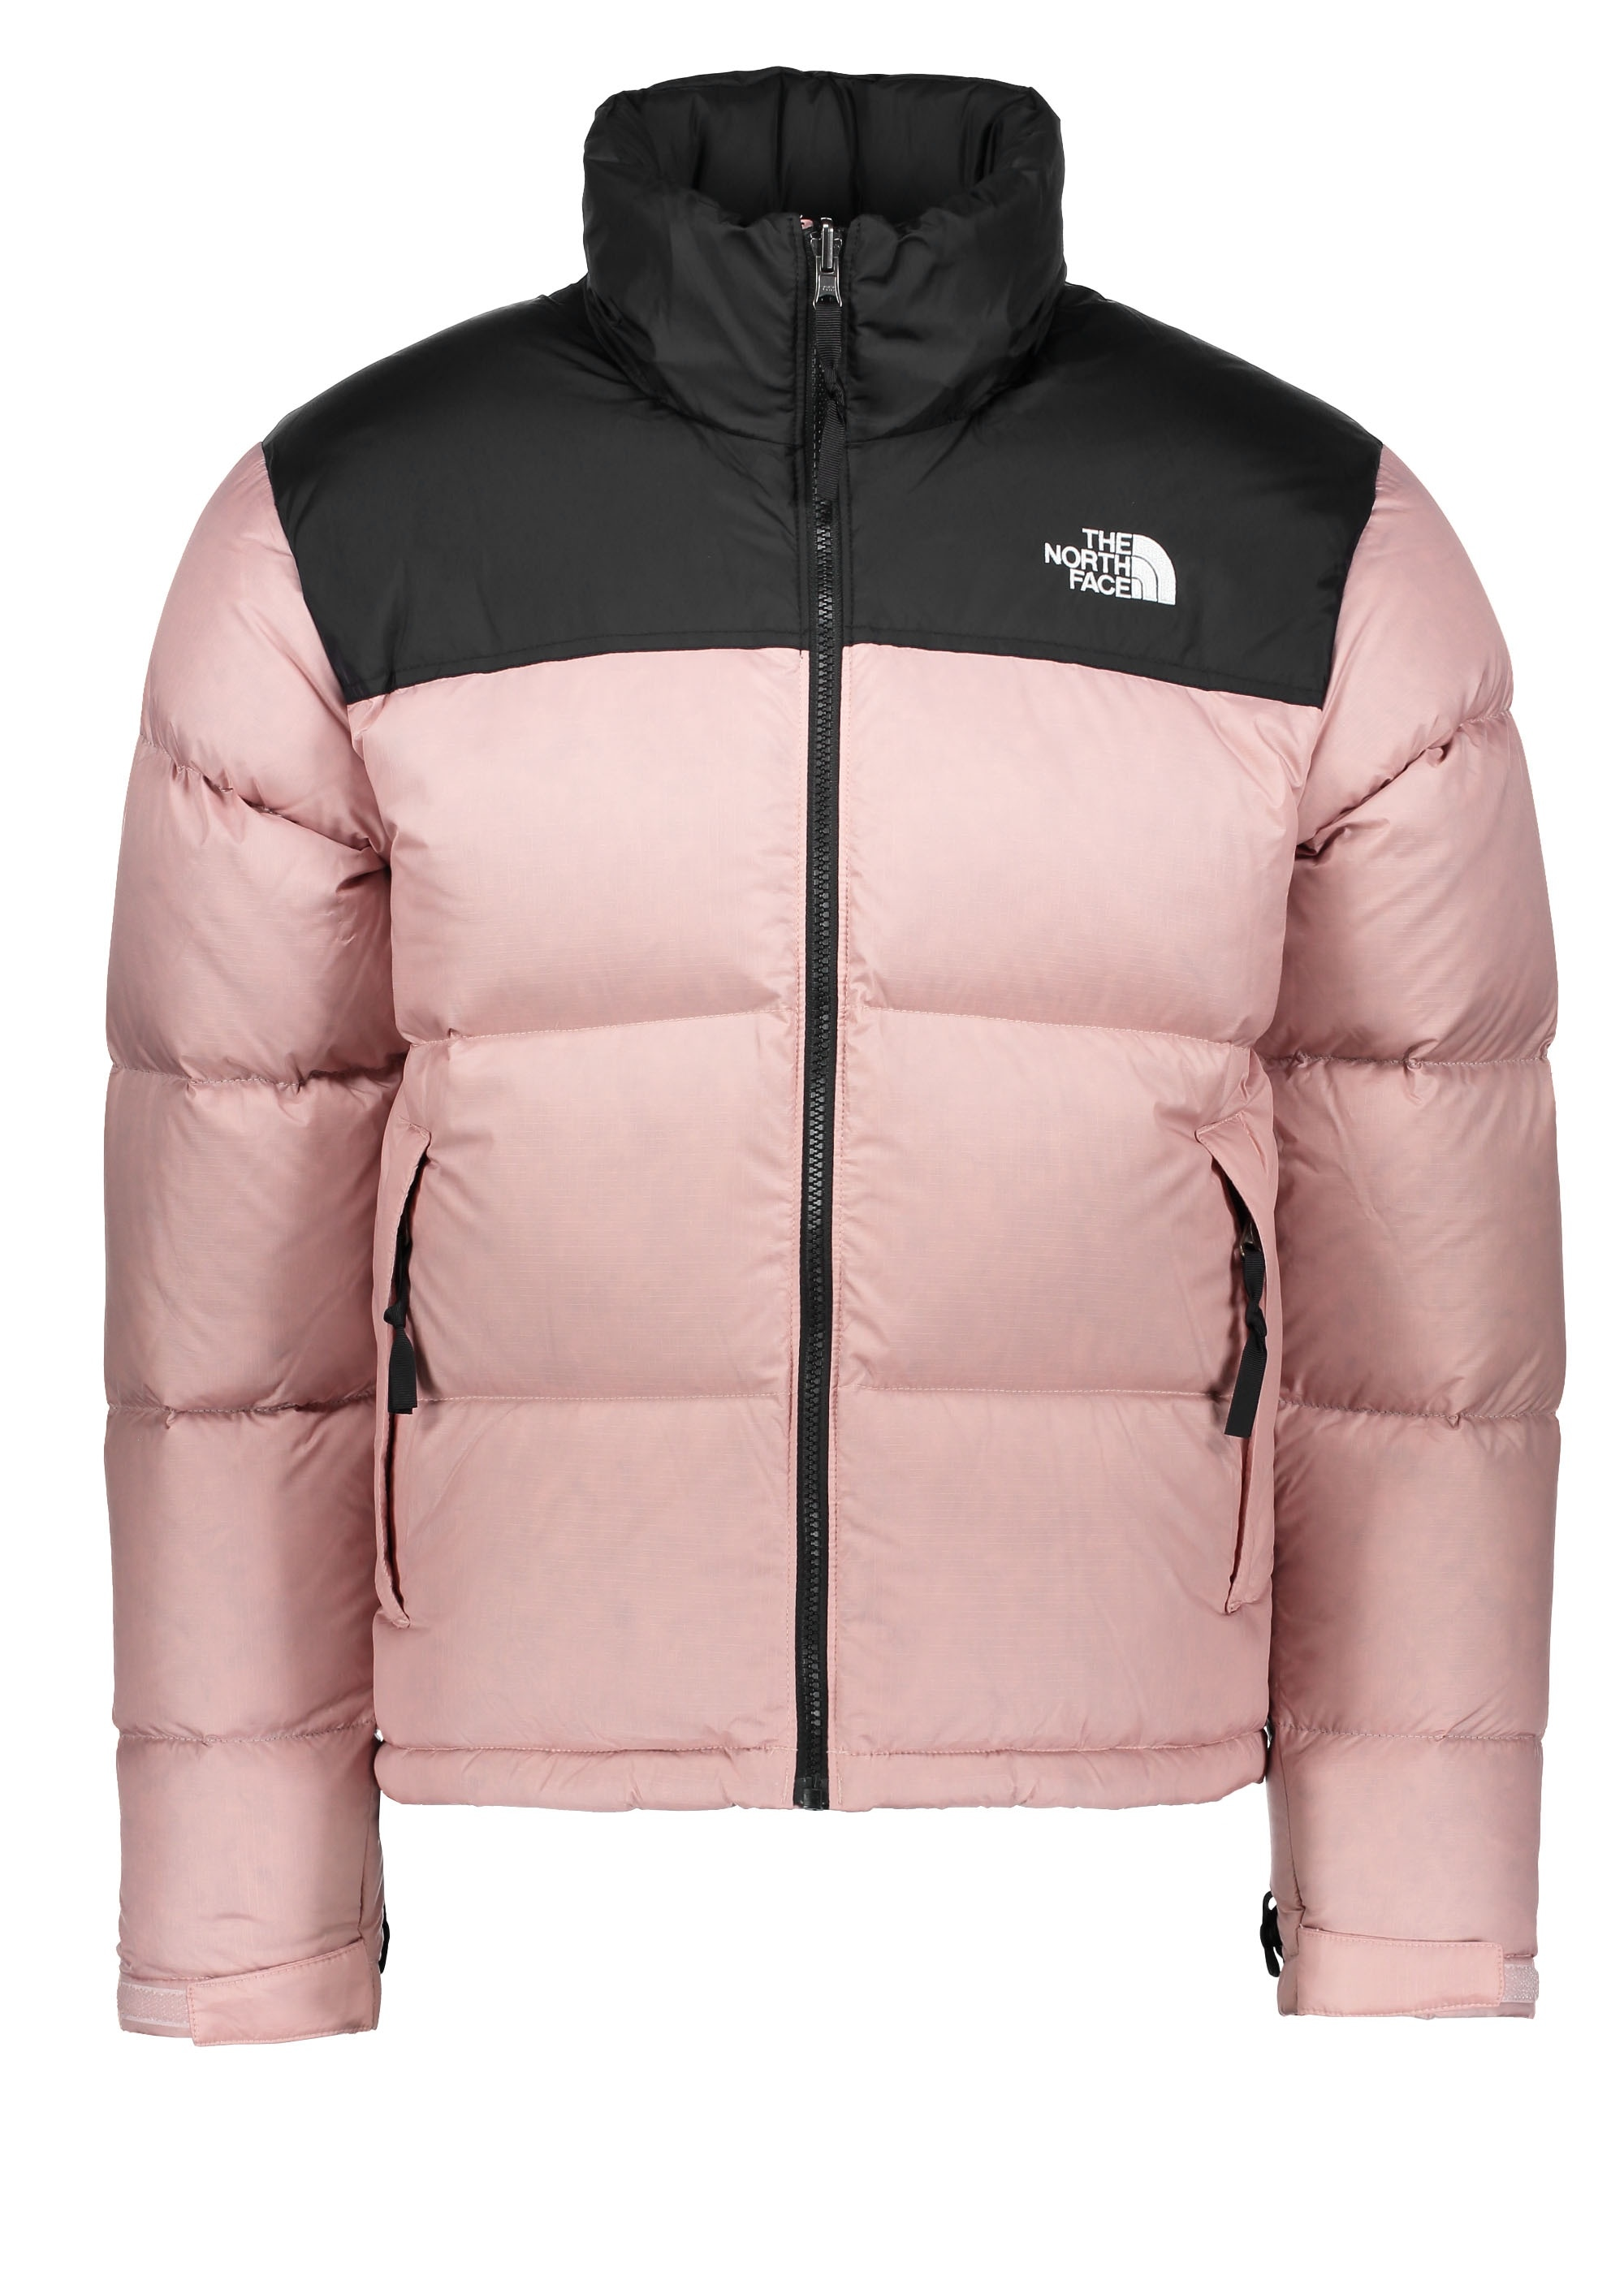 a44a77a32aab The North Face Ladies 1996 RTO - Nuptse Jacket - Triads Ladies from ...